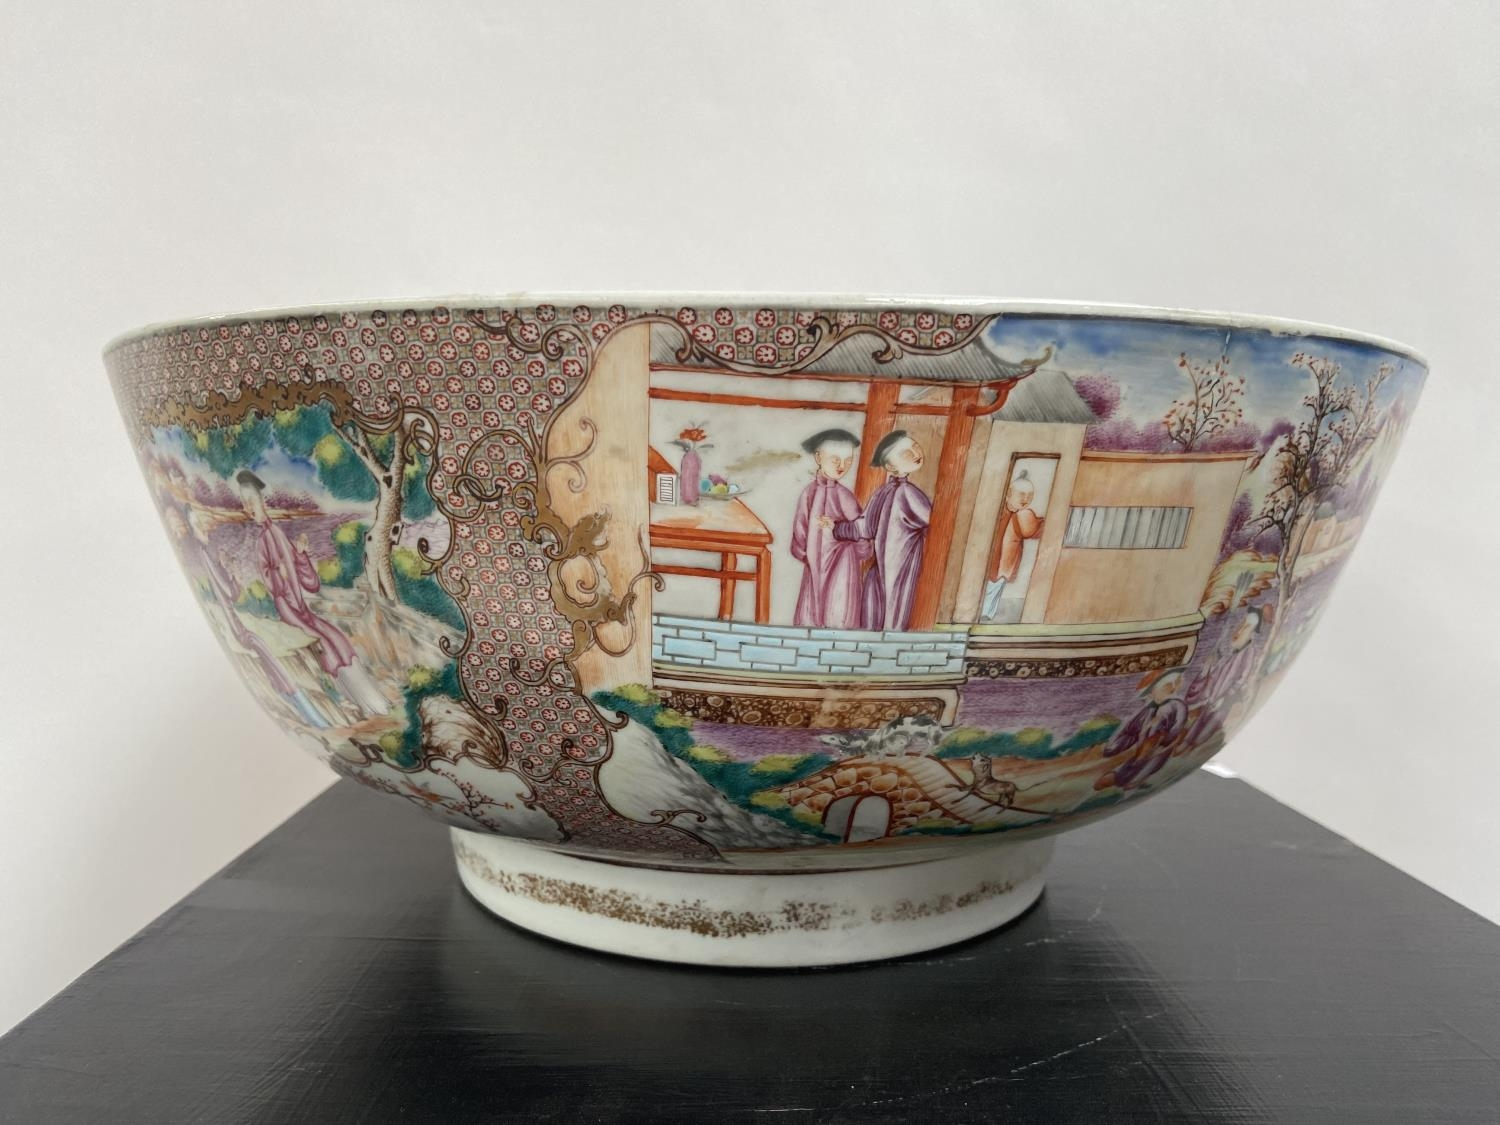 A LARGE 19TH CENTURY CHINESE HAND PAINTED BOWL. EXTERIOR DEPICTS CHINESE HUNTING SCENE PANELS. THE - Image 26 of 39